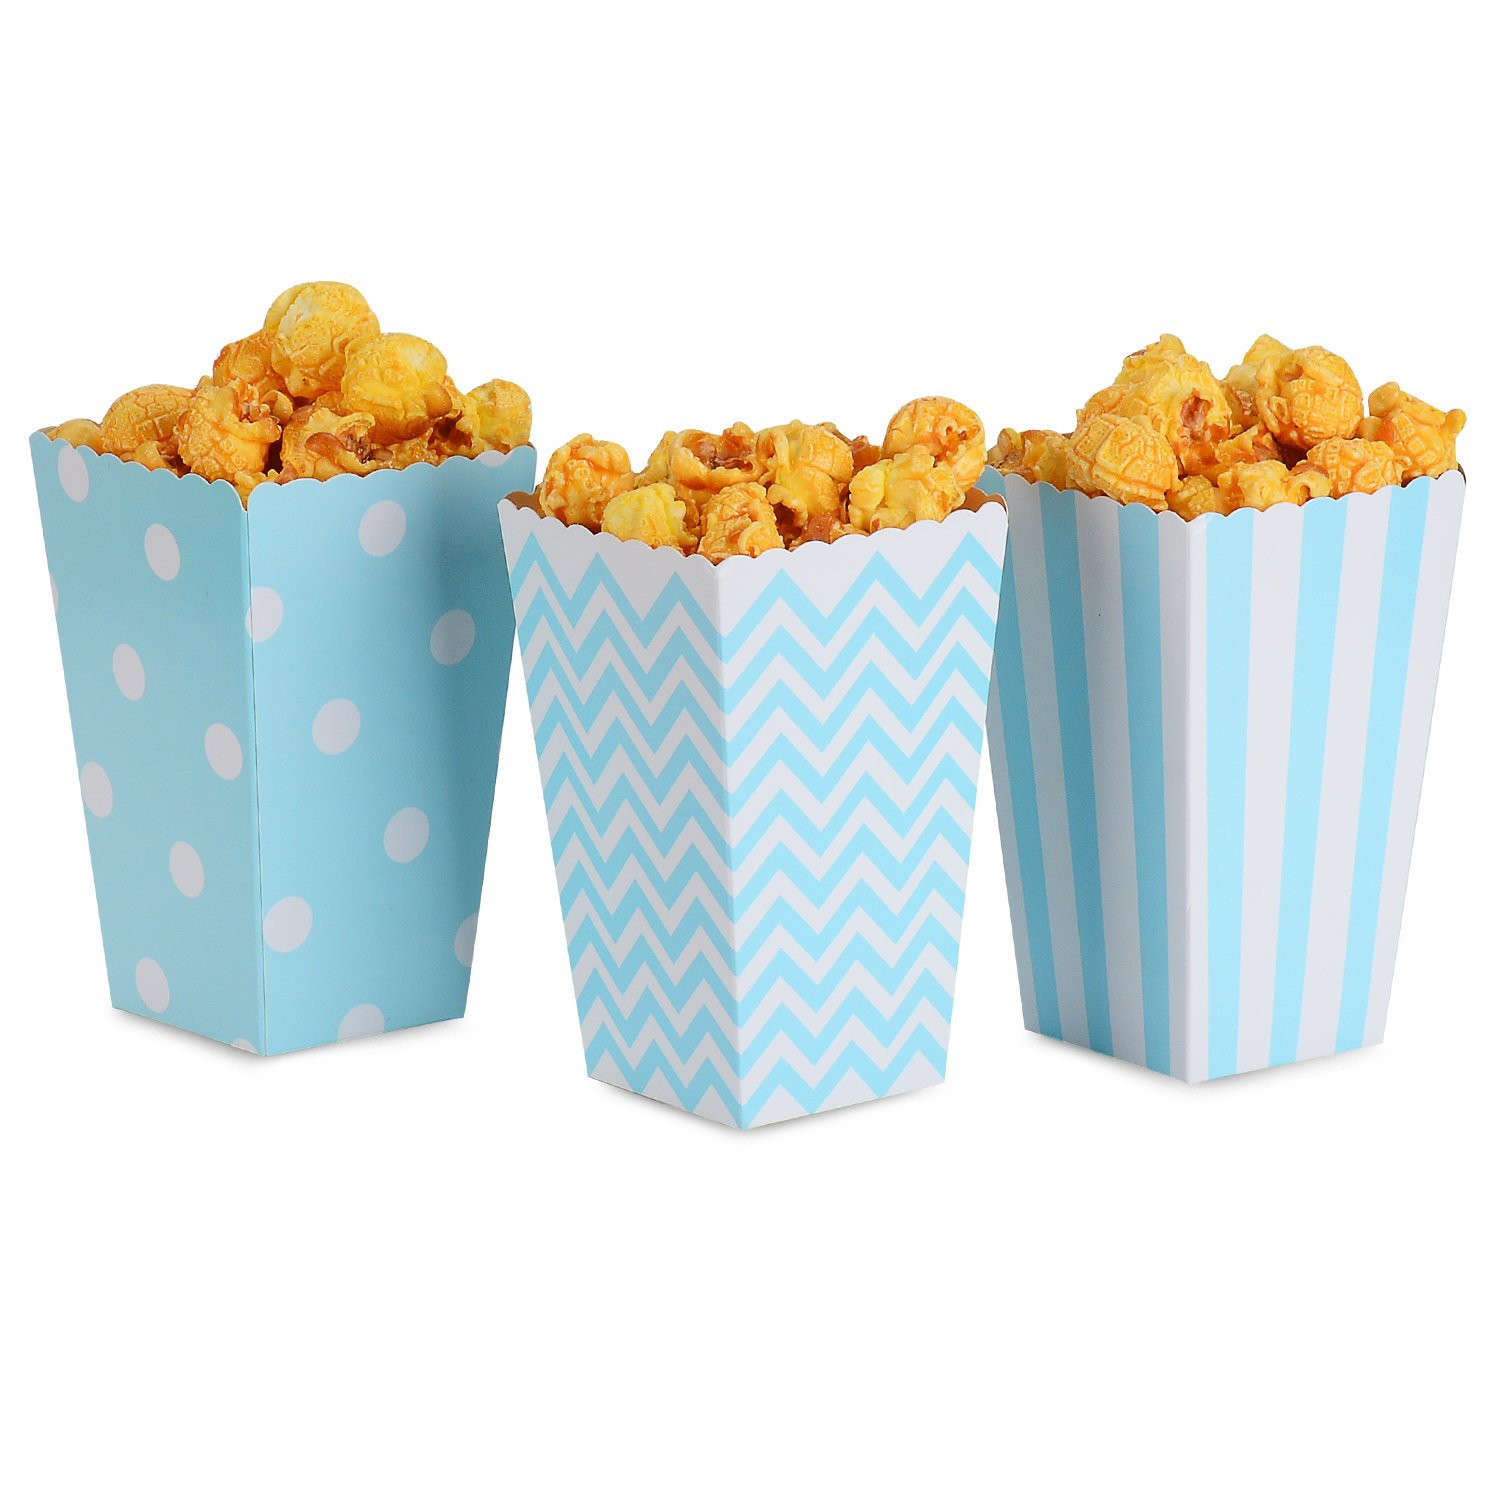 NUIBY Popcorn Boxes, Blue Trio (36 Pack) Polka Dot, Chevron, Stripe treat boxes- Small Movie Theater Popcorn Paper bags Dessert Tables & Wedding Favors